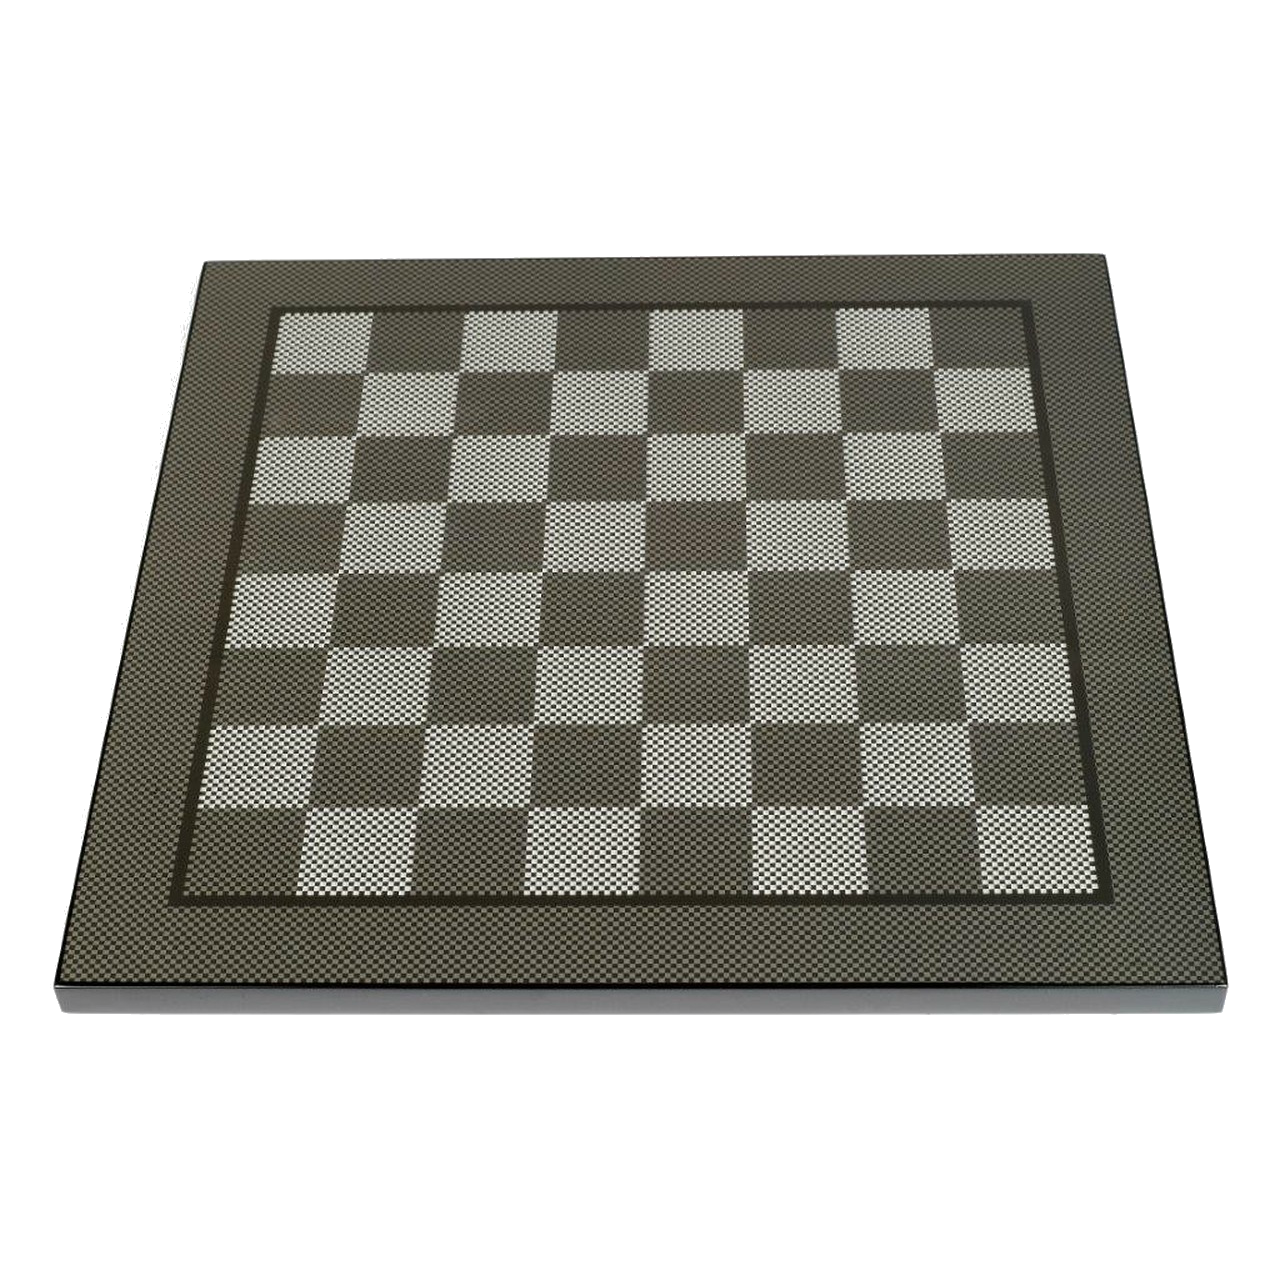 Dal Rossi 50cm Carbon Fibre Look Chess Board (L7906DR)